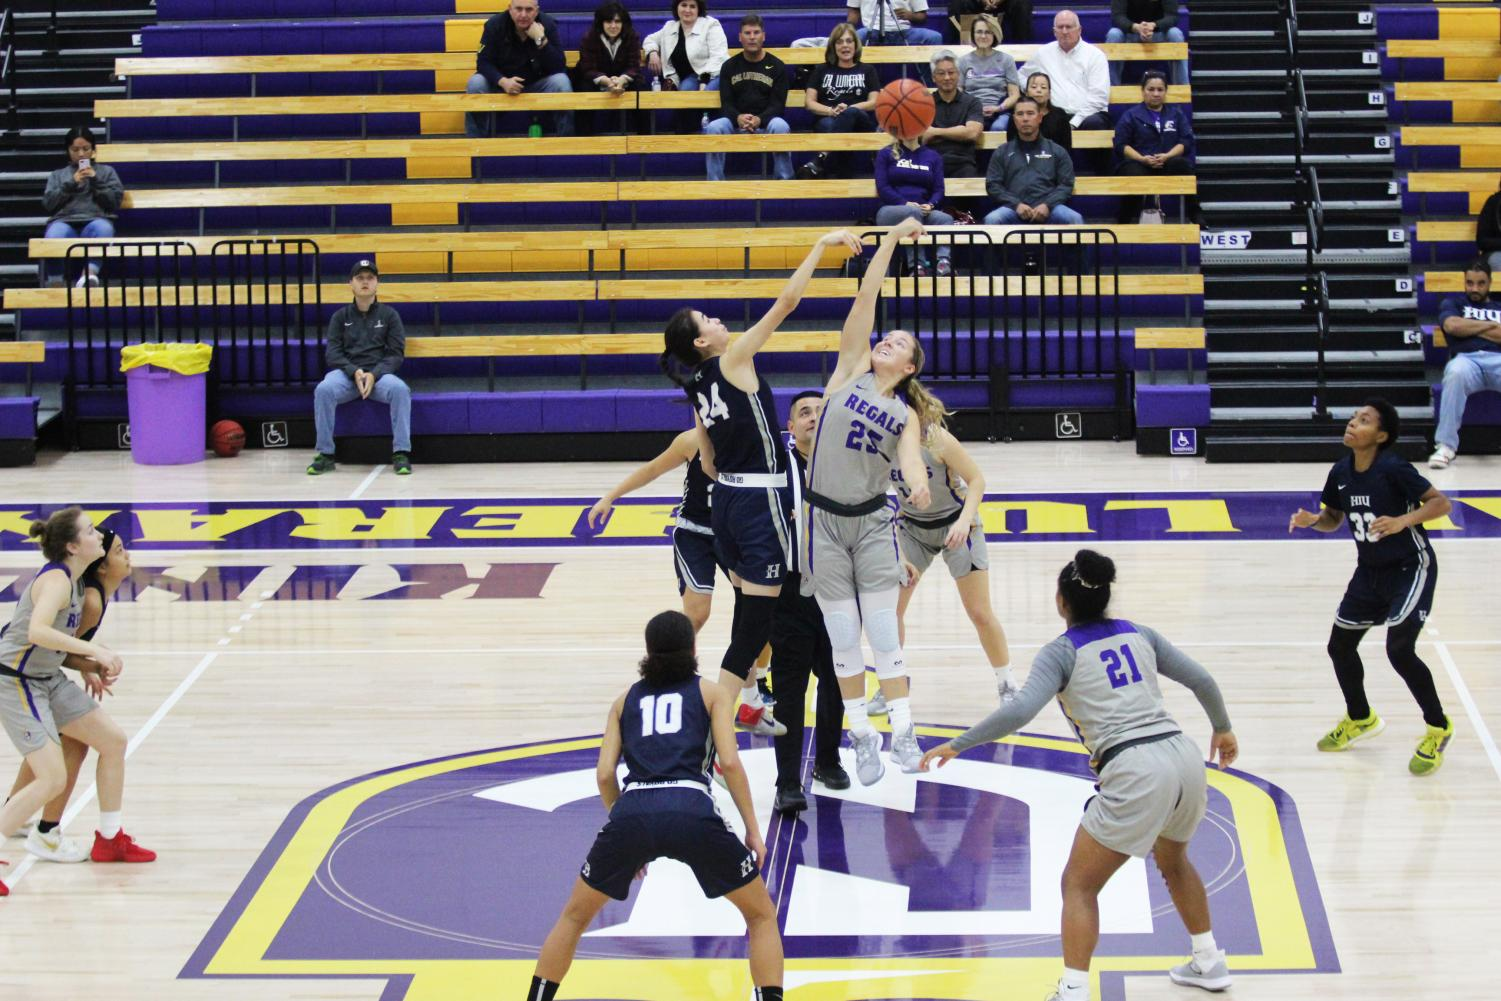 Regals sophomore forward Cameron Mallory gets possession of the ball after tip off against Hope International first-year forward Mia Heidt on Wednesday, Nov. 6.